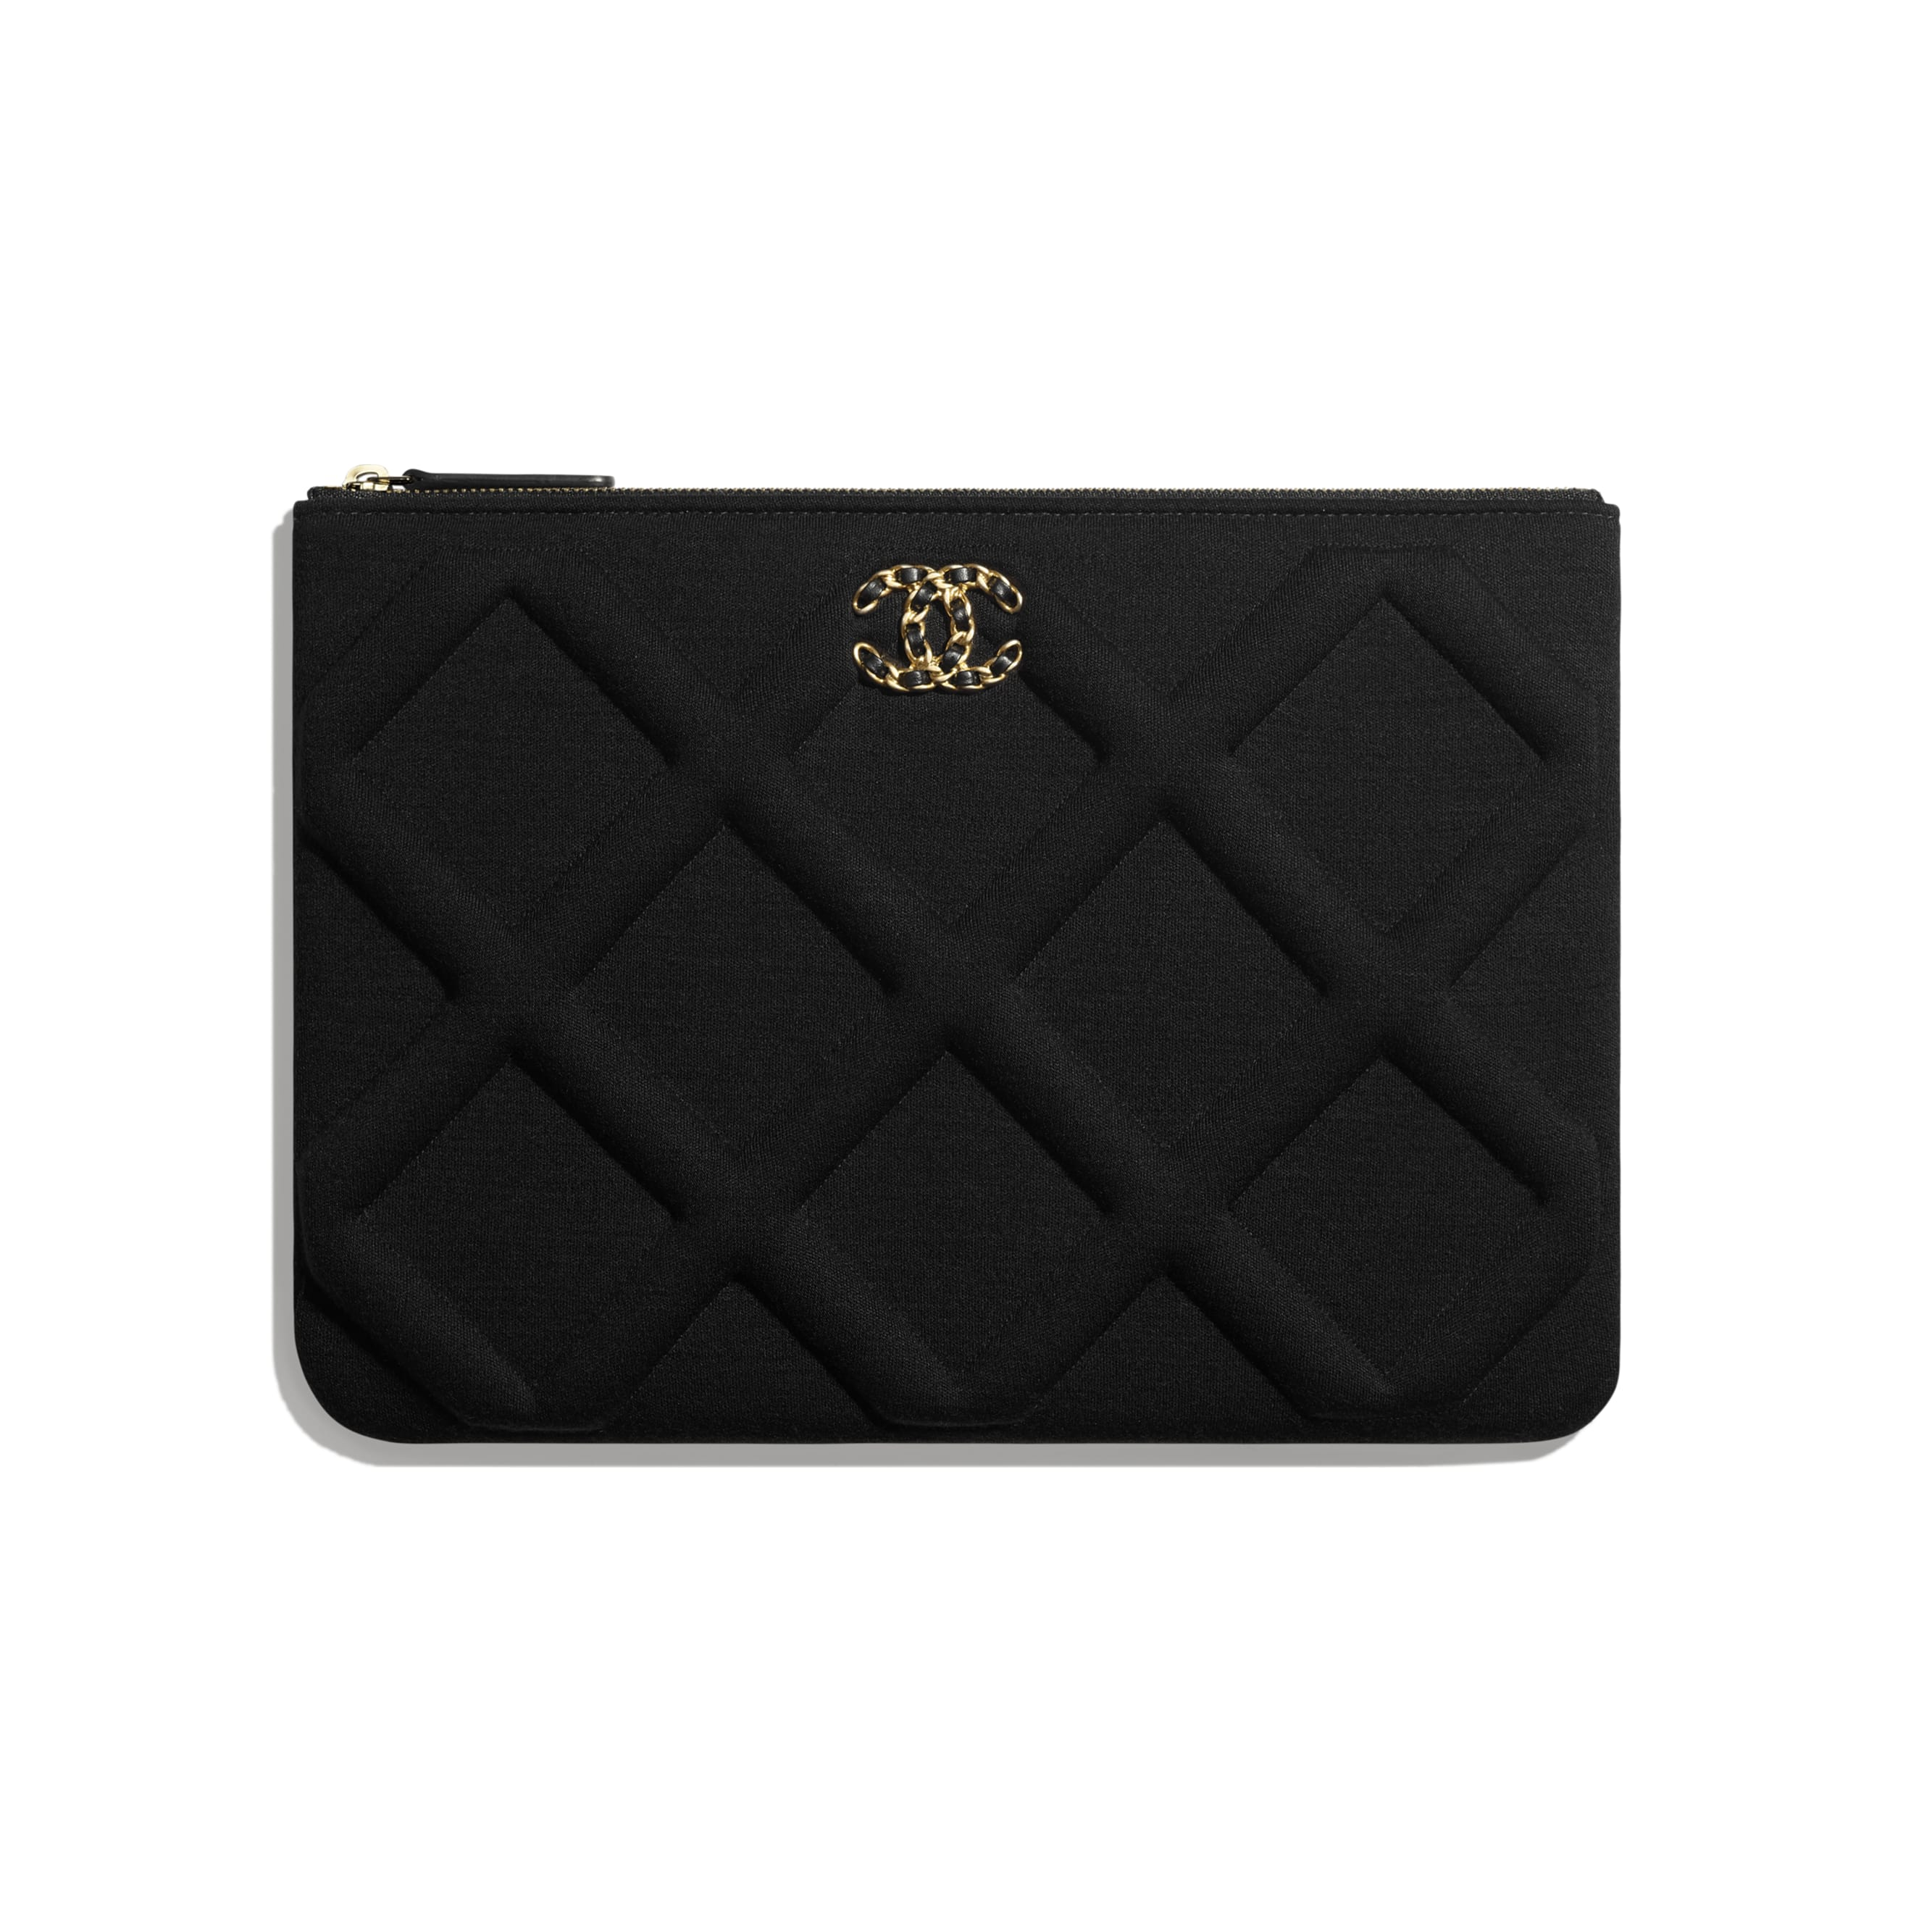 CHANEL 19 Pouch - Black - Jersey, Gold-Tone, Silver-Tone & Ruthenium-Finish Metal - Default view - see standard sized version